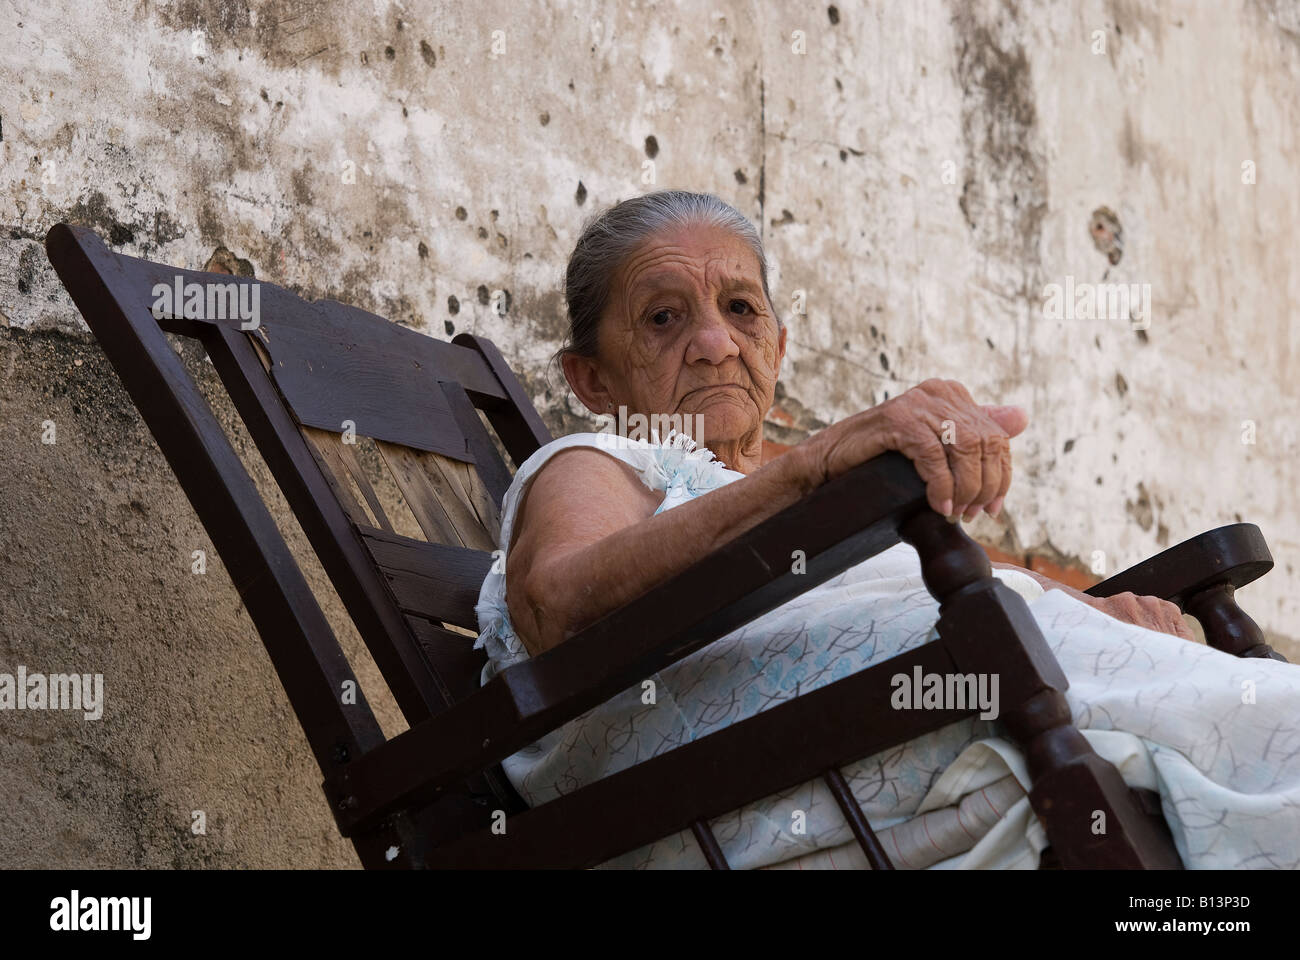 Old Rocking Chair Stock Photos Amp Old Rocking Chair Stock